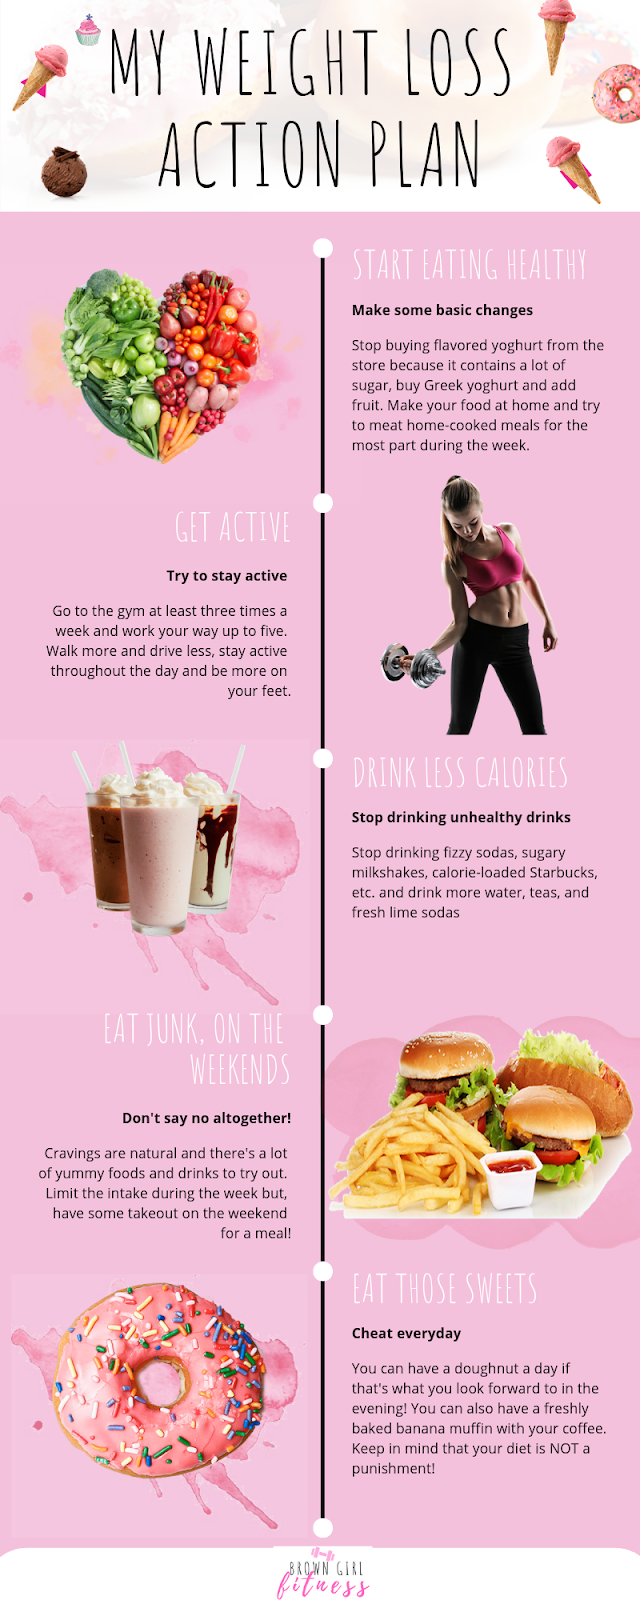 Brown girl fitness, How to else weight, how to reduce weight, how to burn fat, how to weight loss, healthy lifestyle, fit lifestyle, how to lose weight effortlessly, how do i loose weight, how do you lose weight, what causes weight loss